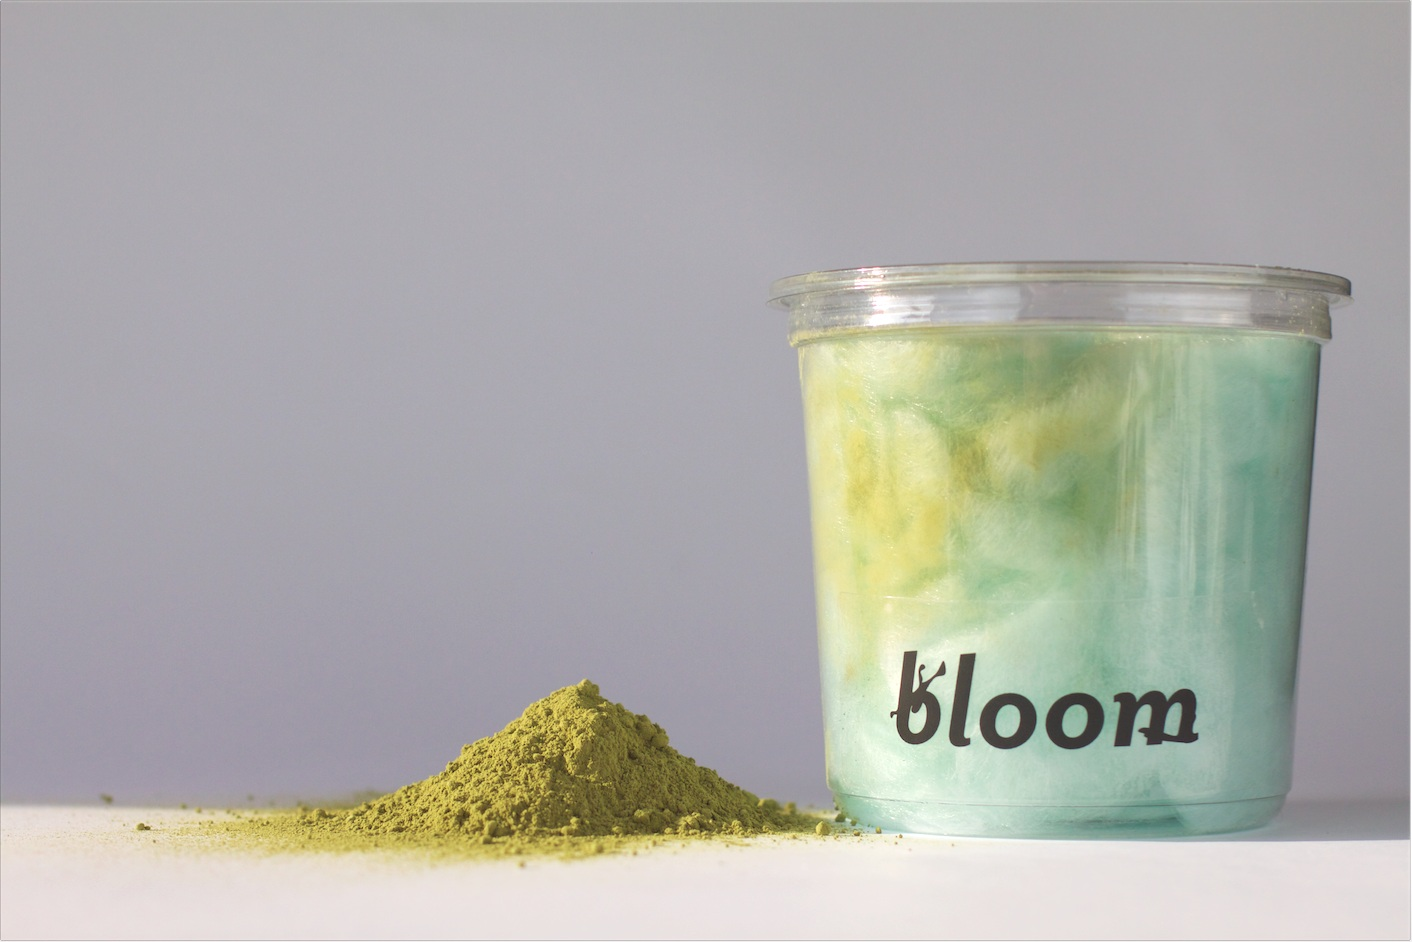 bloom_candyfloss_green_tea_matcha_organic_ingredients_our_product_picture_number_1.png